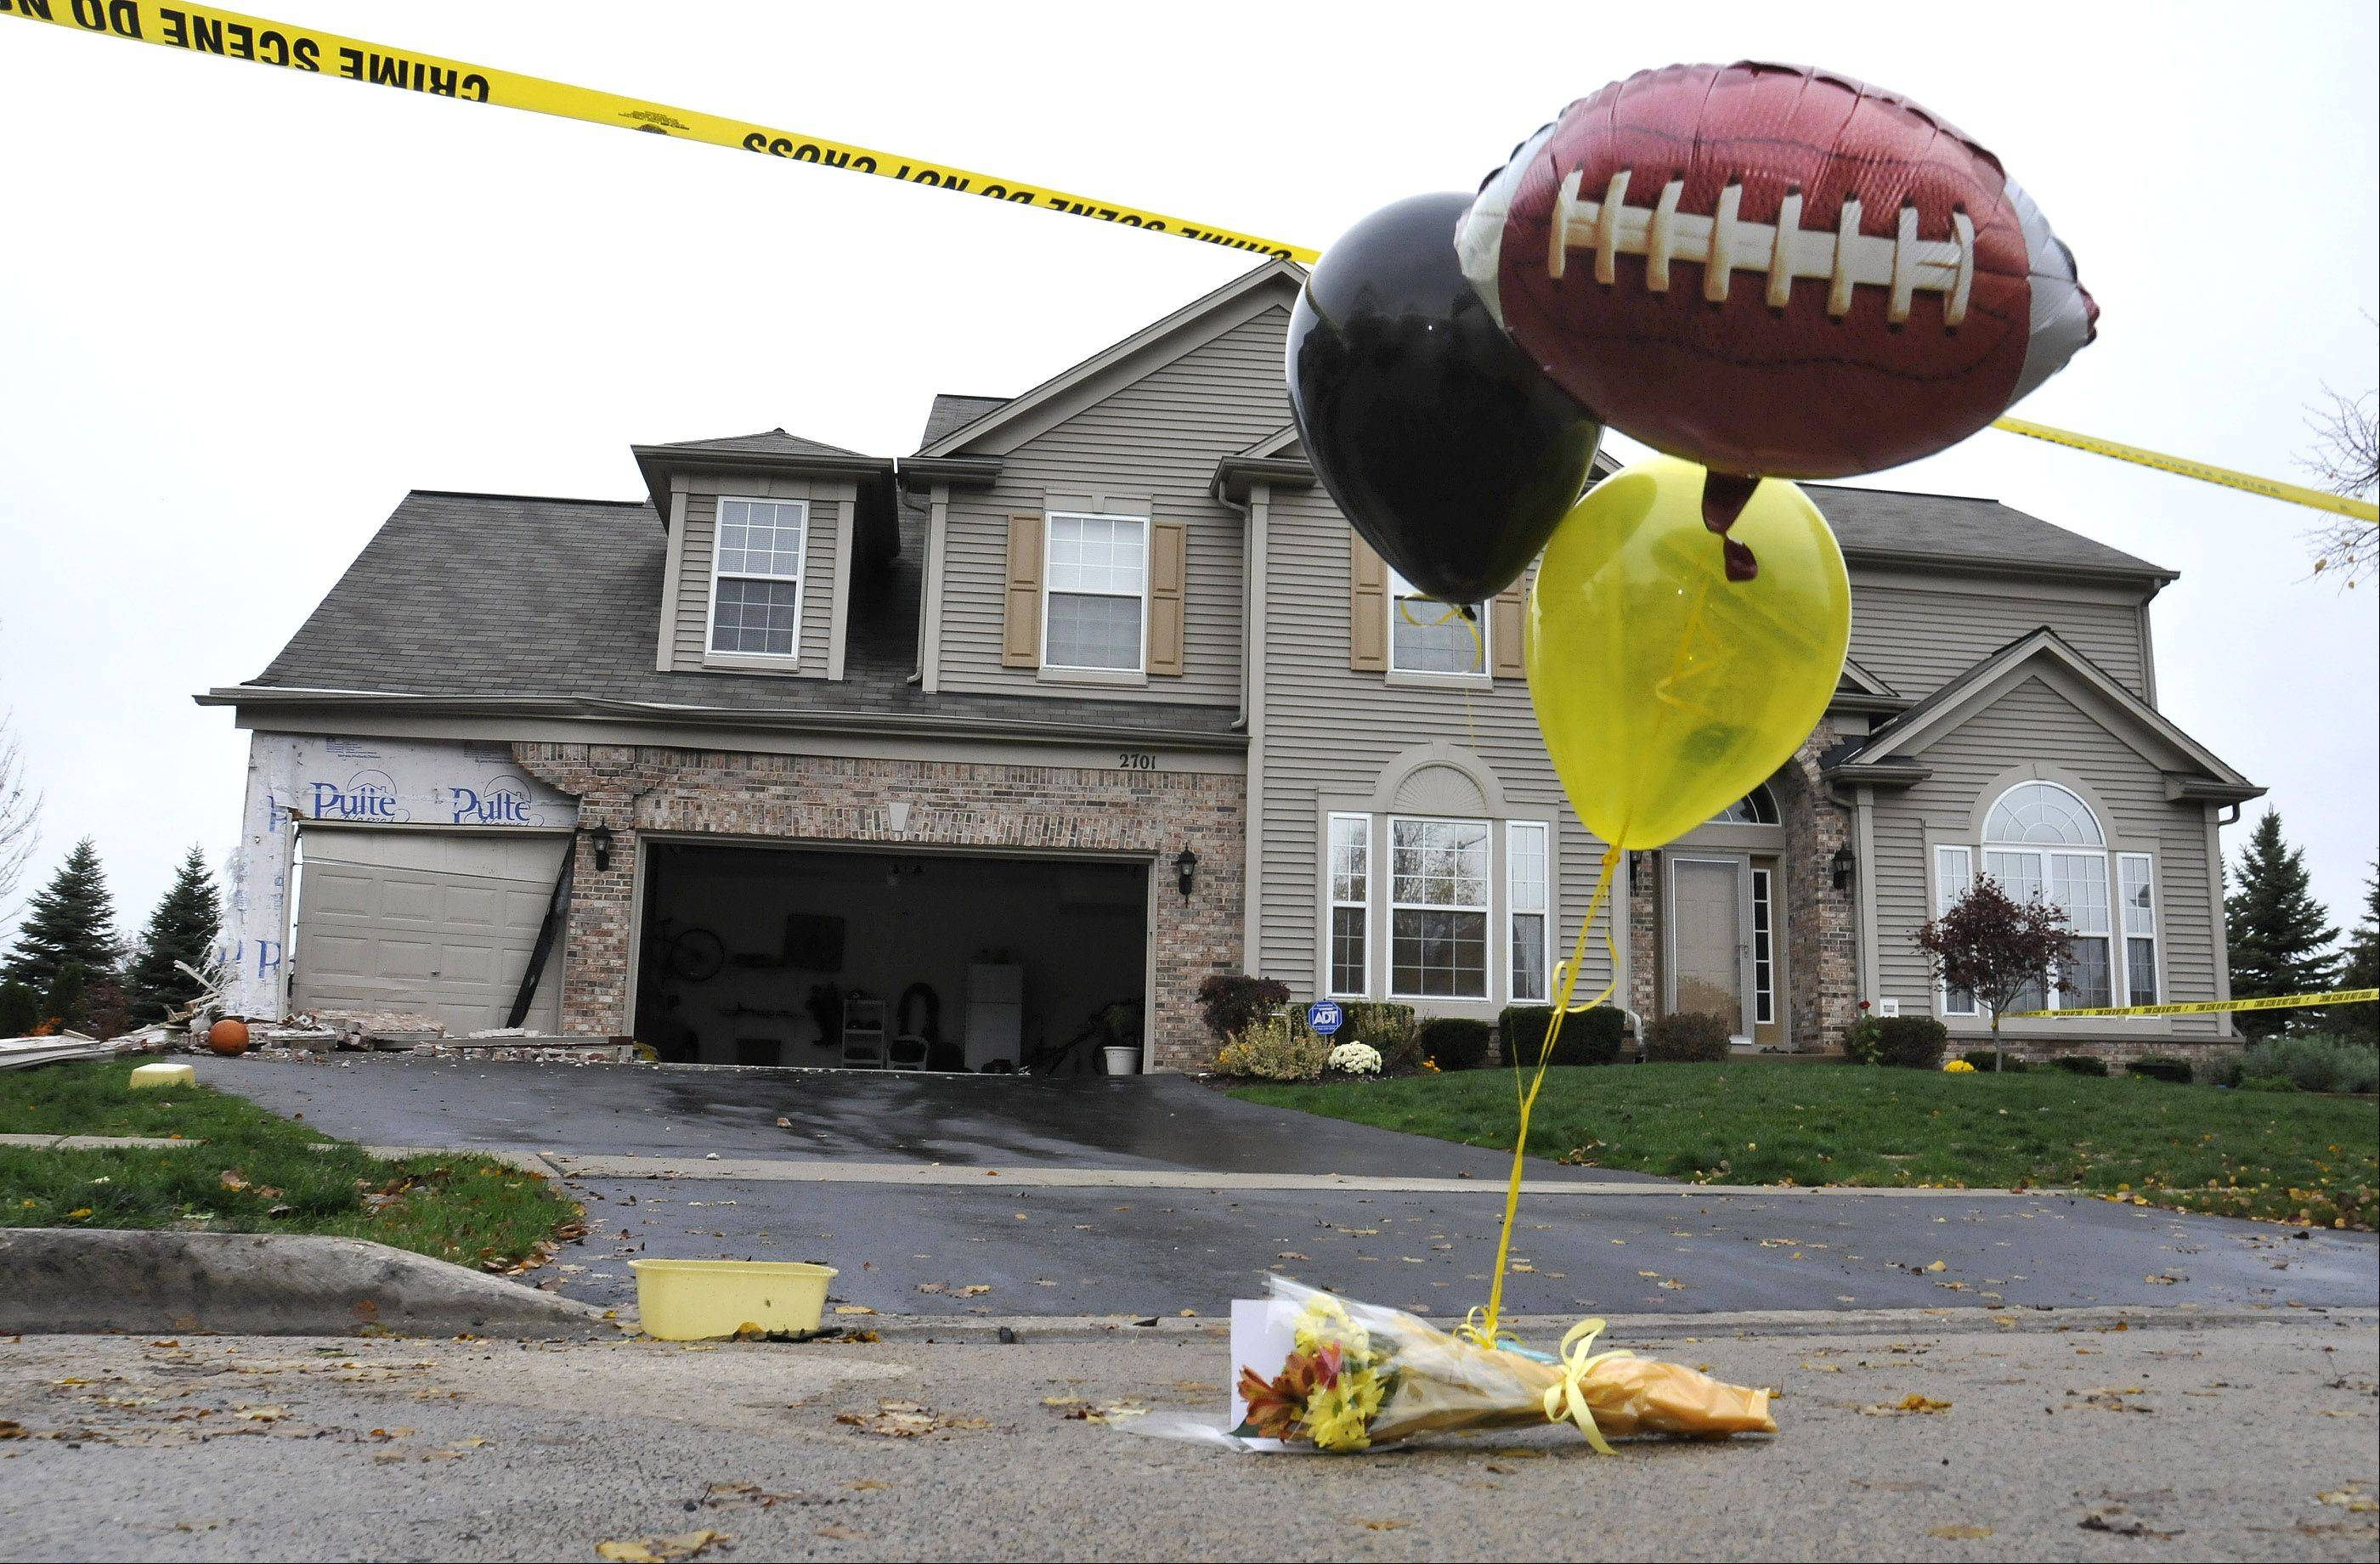 Friends and students of Metea Valley High School football player and fellow student Devin Meadows stop by the house on the 2700 block of Hamman Way in Aurora Tuesday morning. Meadows was killed earlier this morning when a car he was riding in went out of control and smashed into the house.